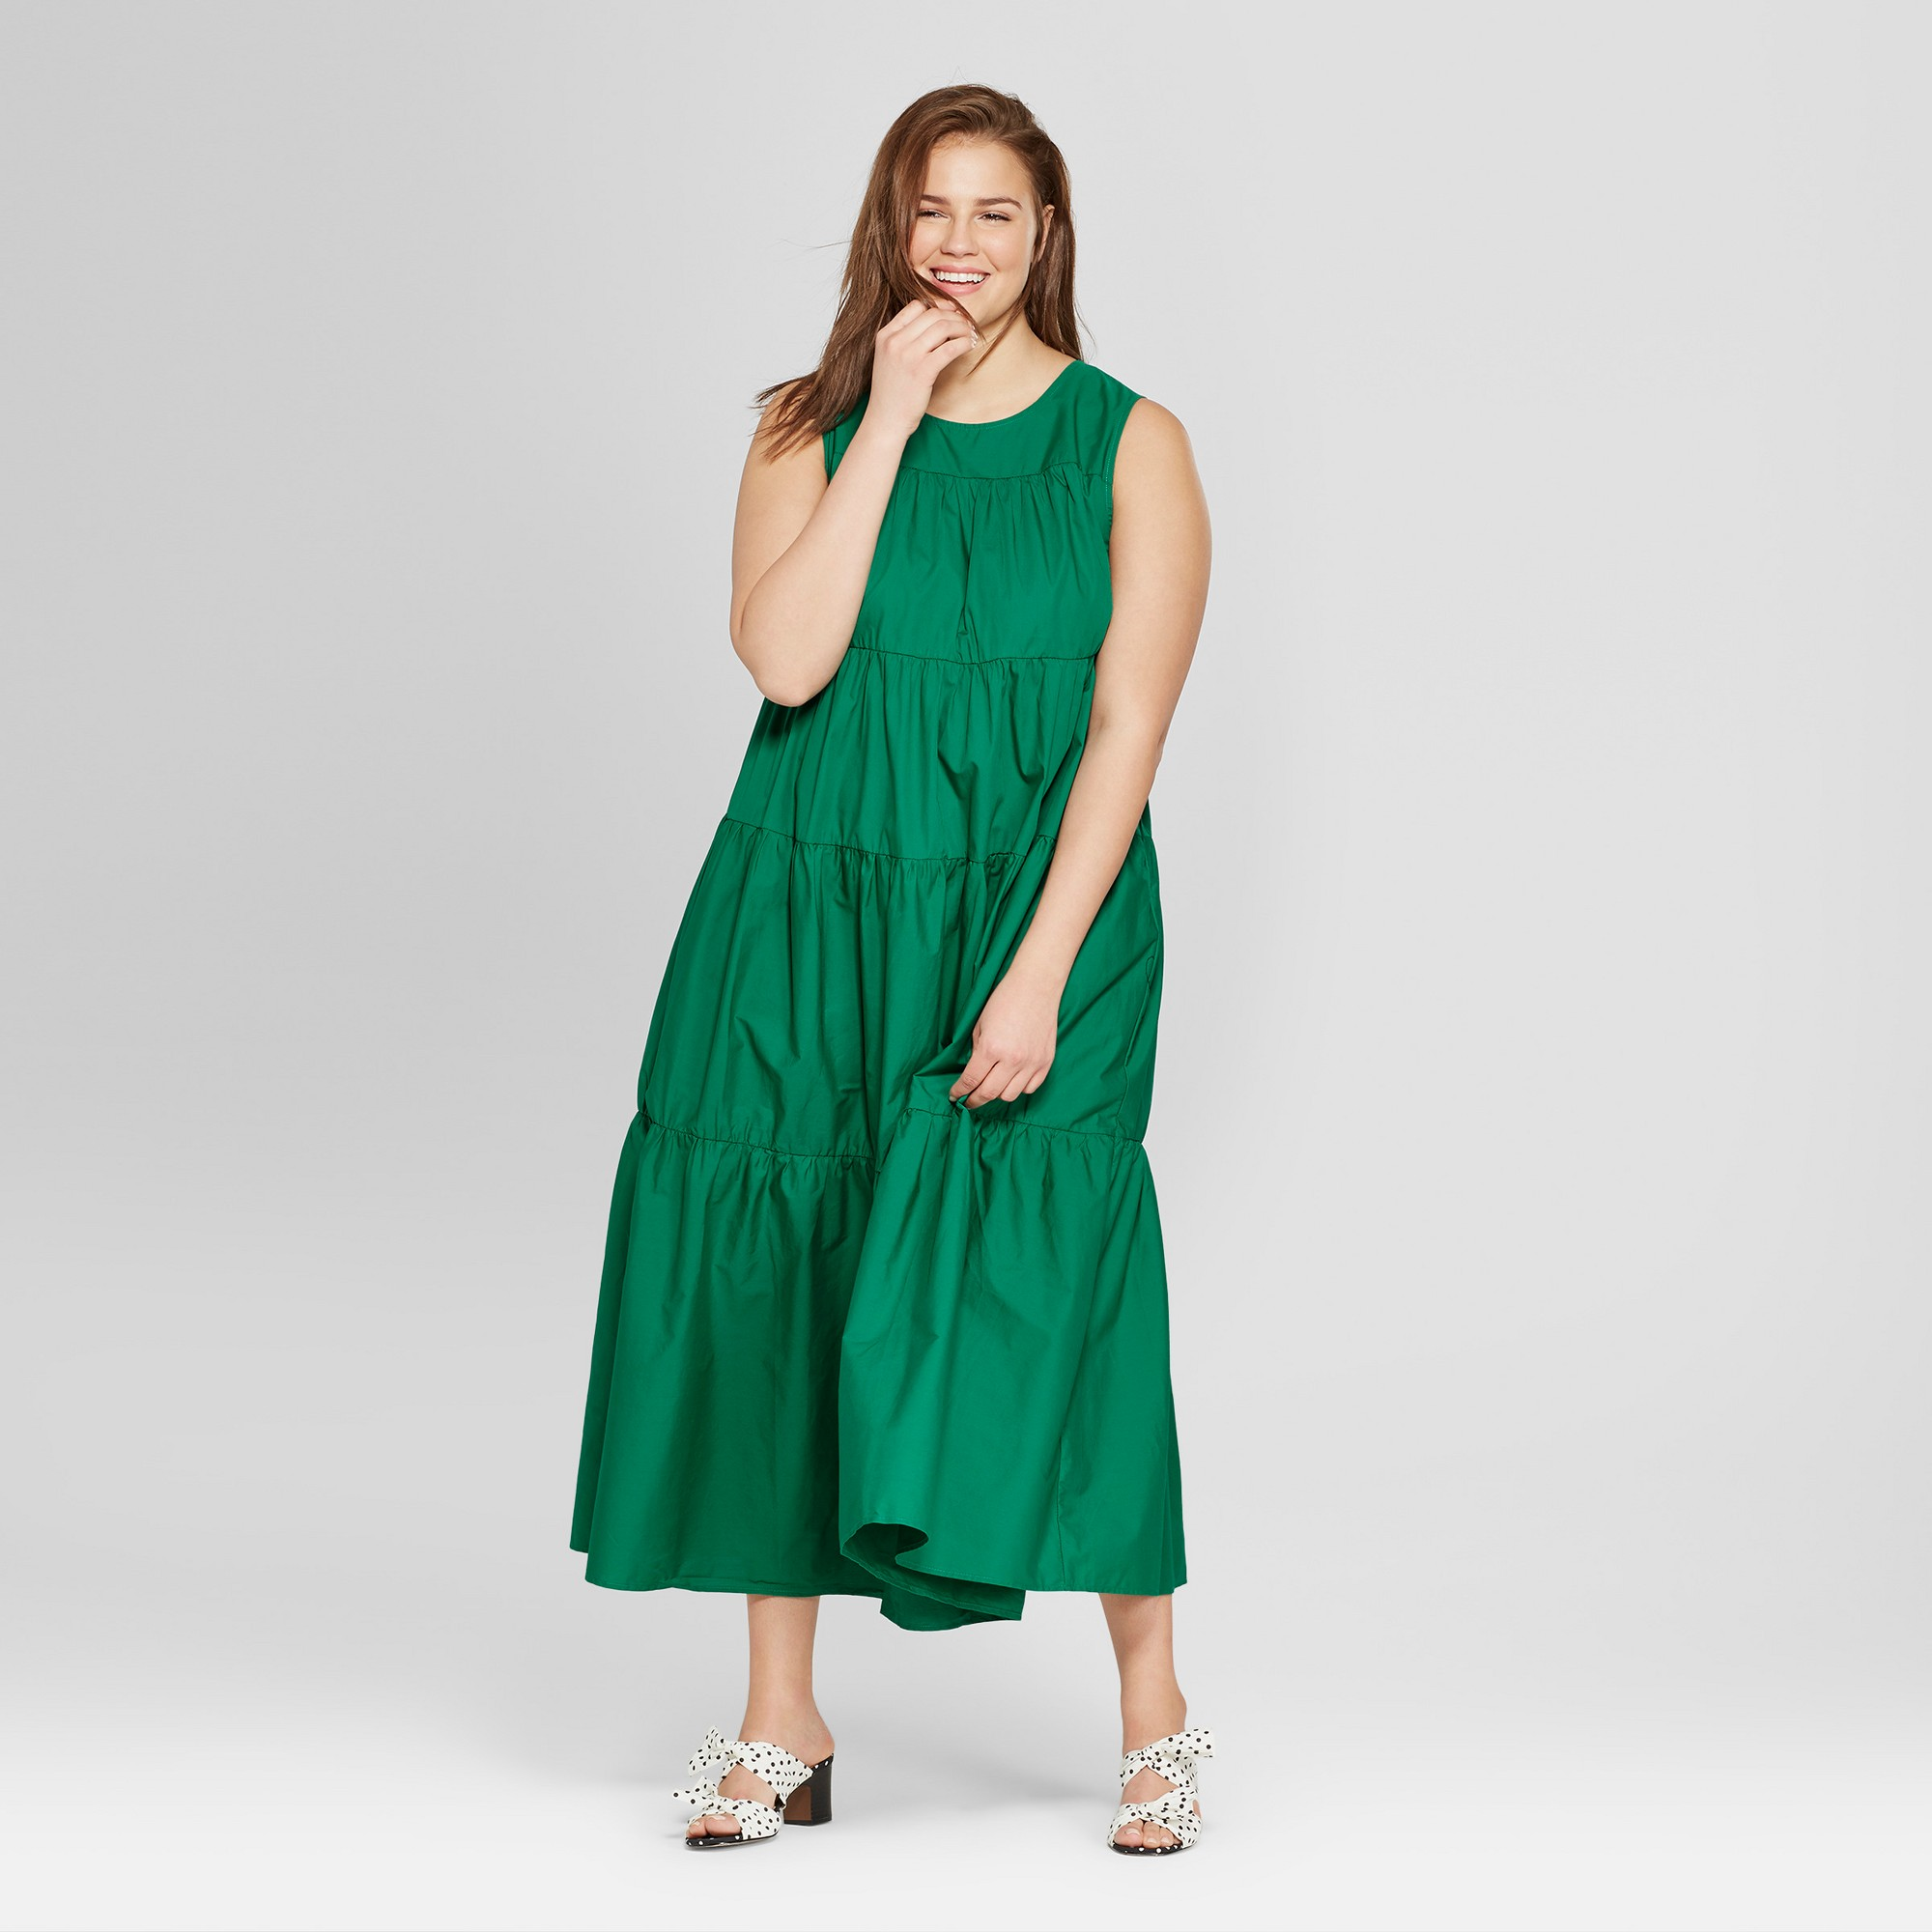 abb1191a8211 Women's Plus Size Tiered Maxi Dress - Who What Wear Green 2X ...